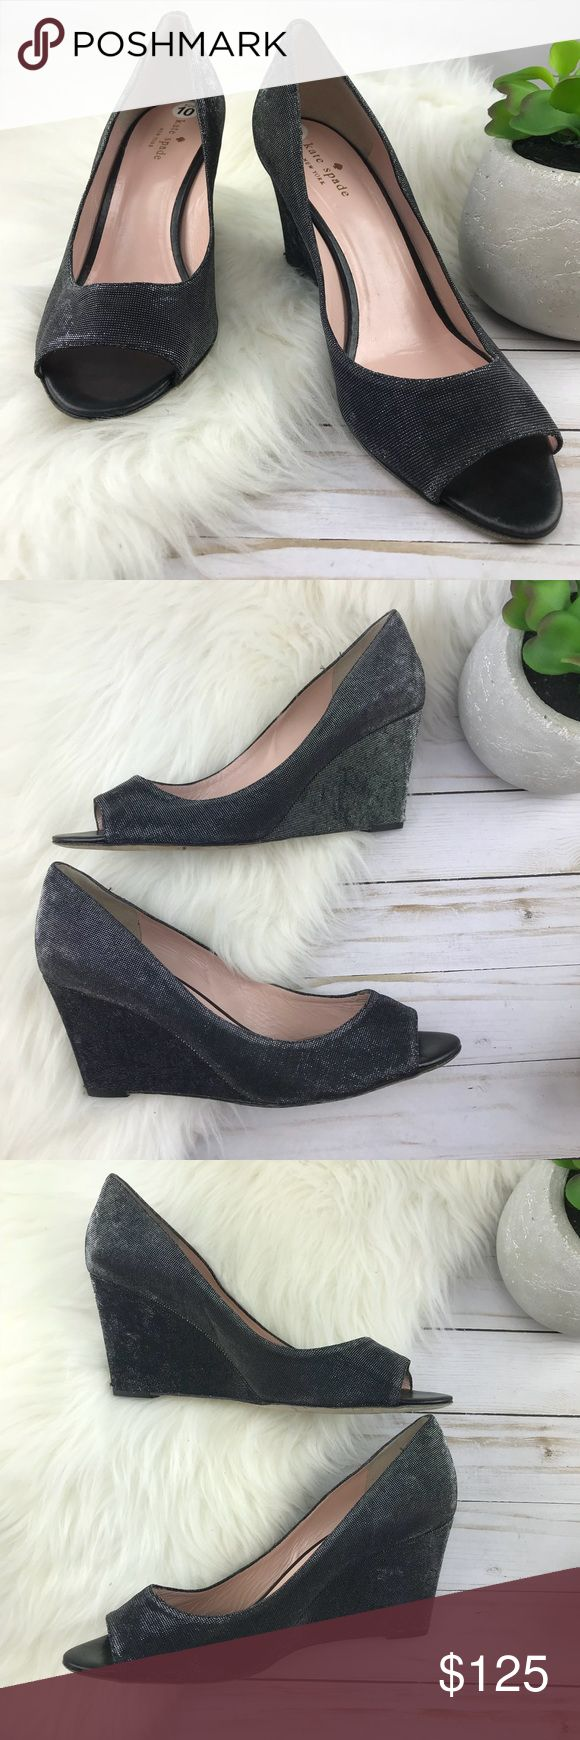 Kate Spade Silver Black Peep Toe Wedges Stunning!  Normal-minimal wear.  Slight wear to the wedge as shown in photos. kate spade Shoes Wedges